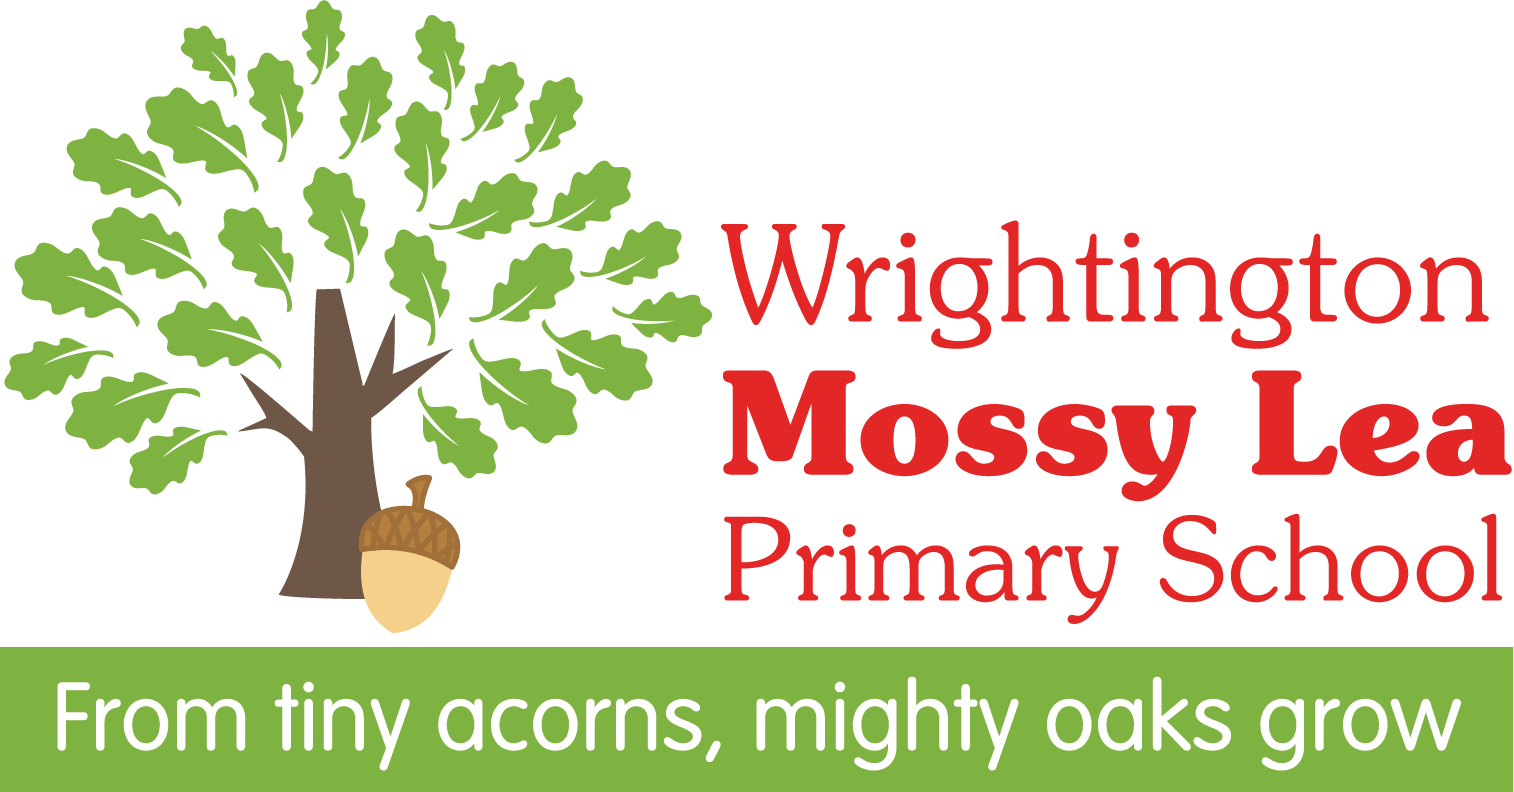 Wrightington Mossy Lea Primary School